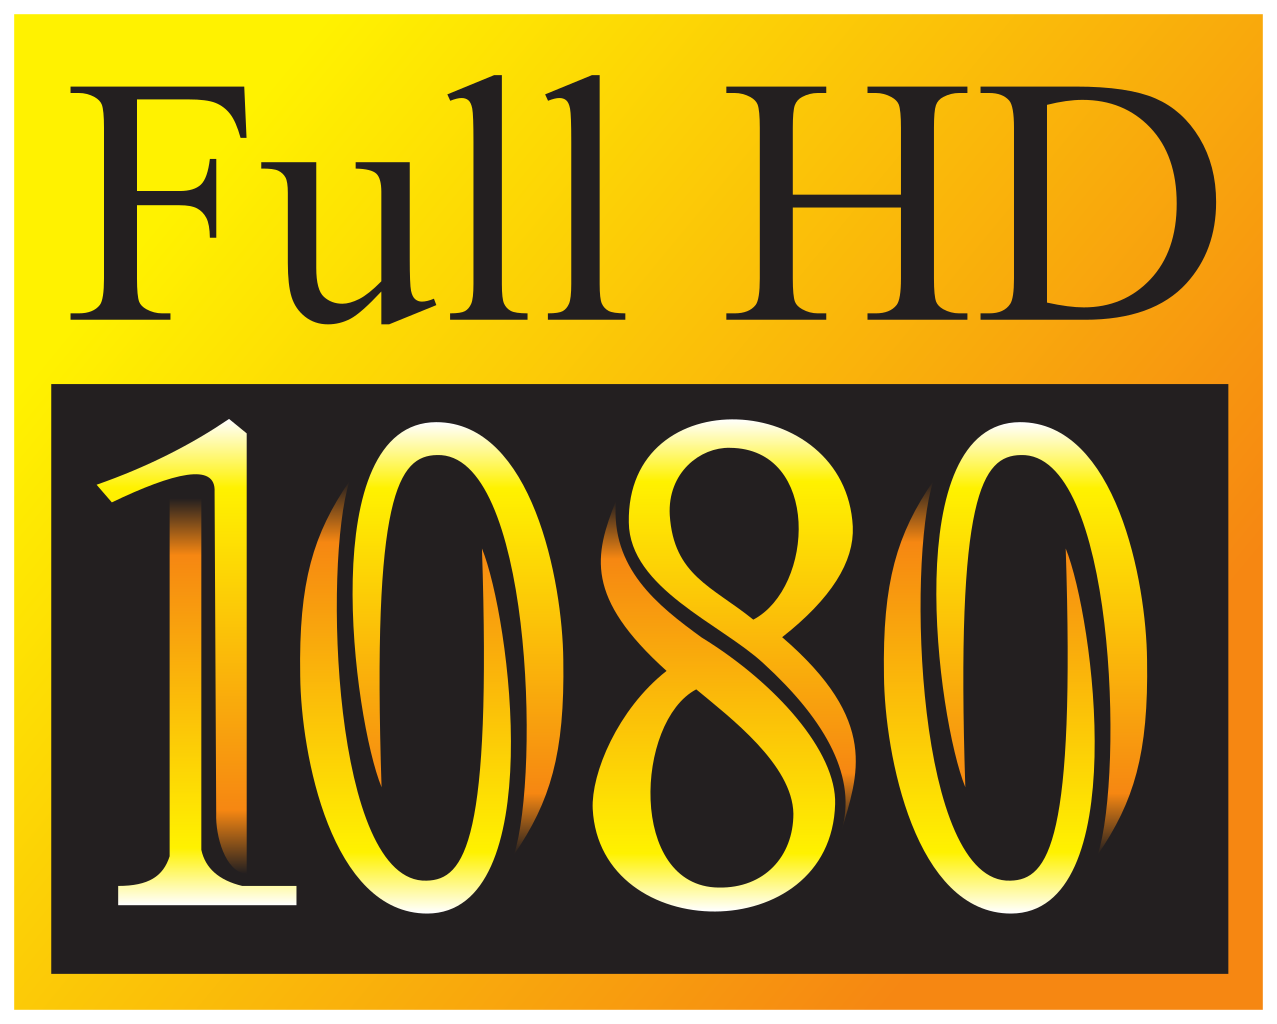 File:Full hd logo.svg.